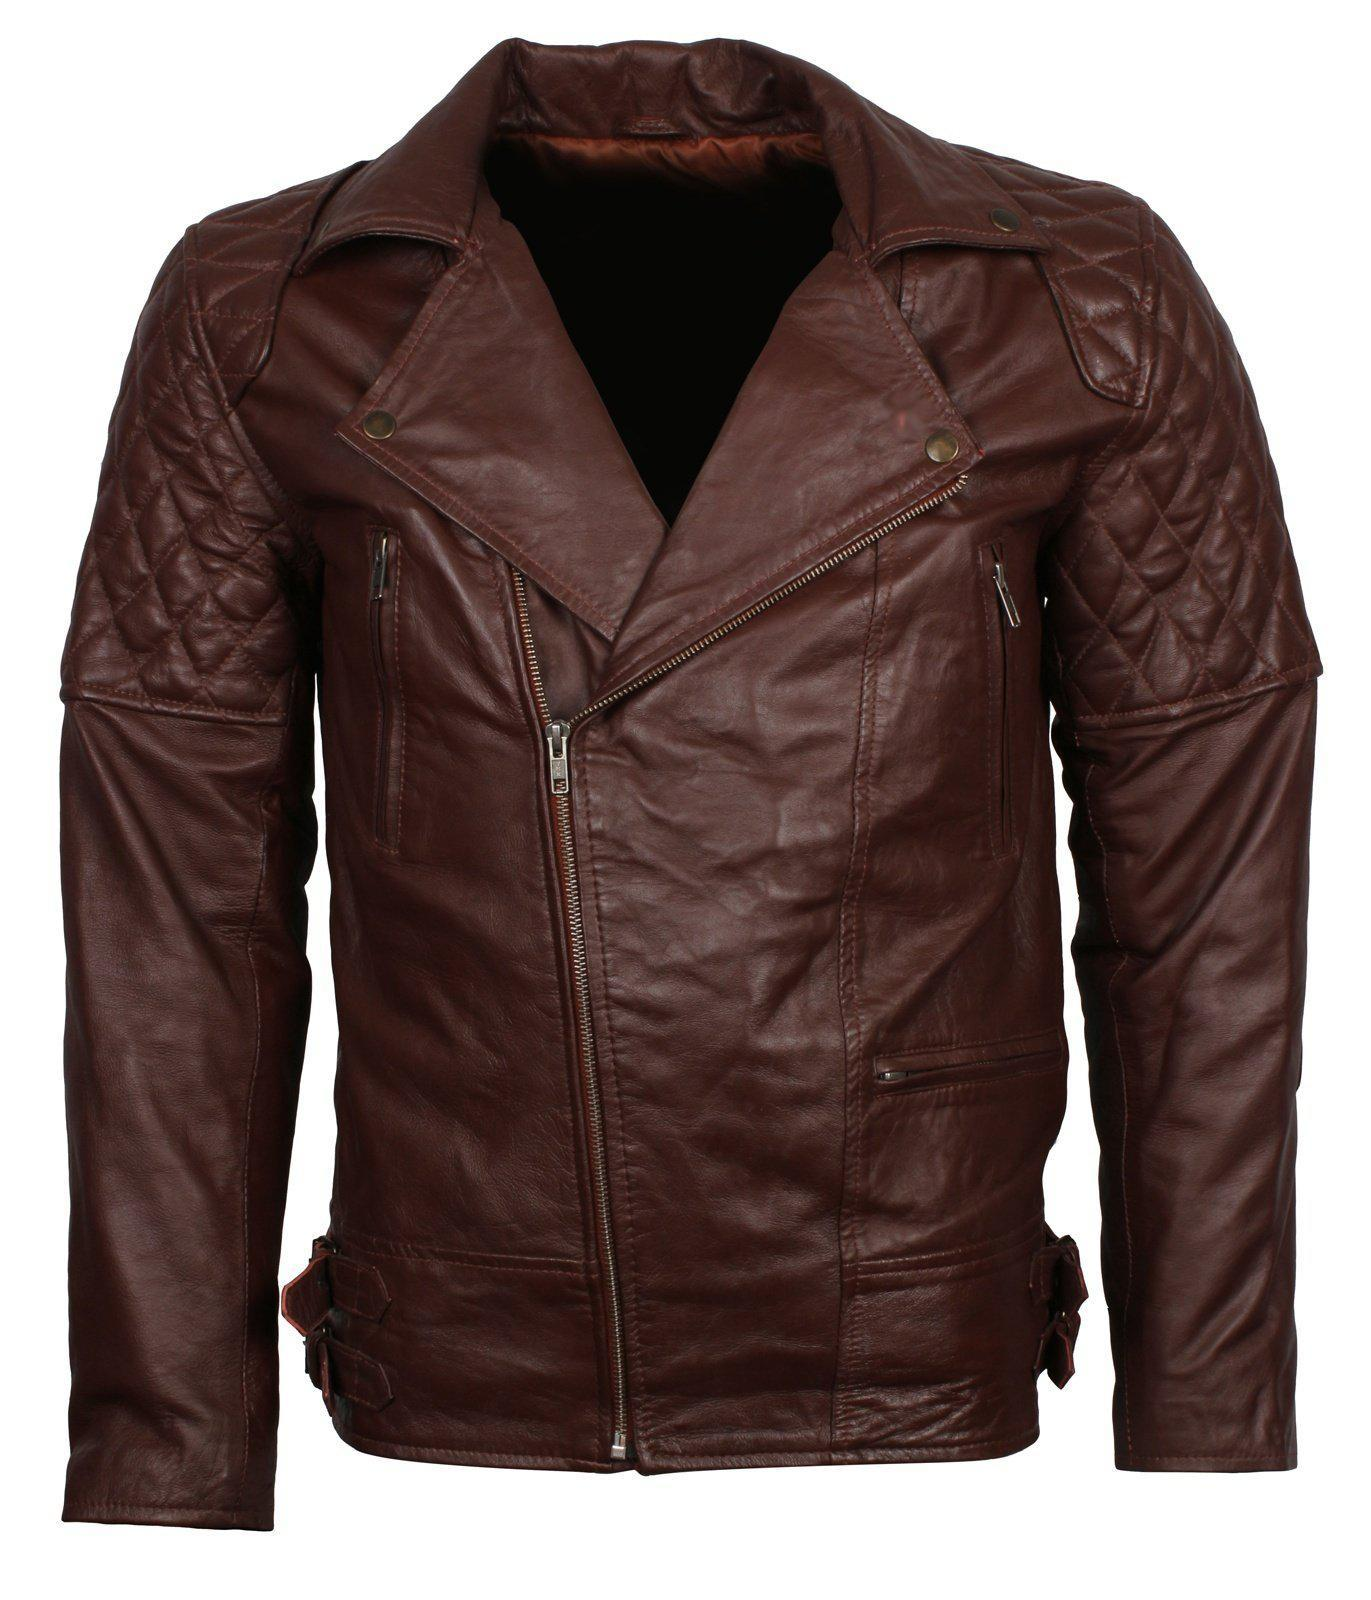 Dark Brown Brando motorcycle jacket